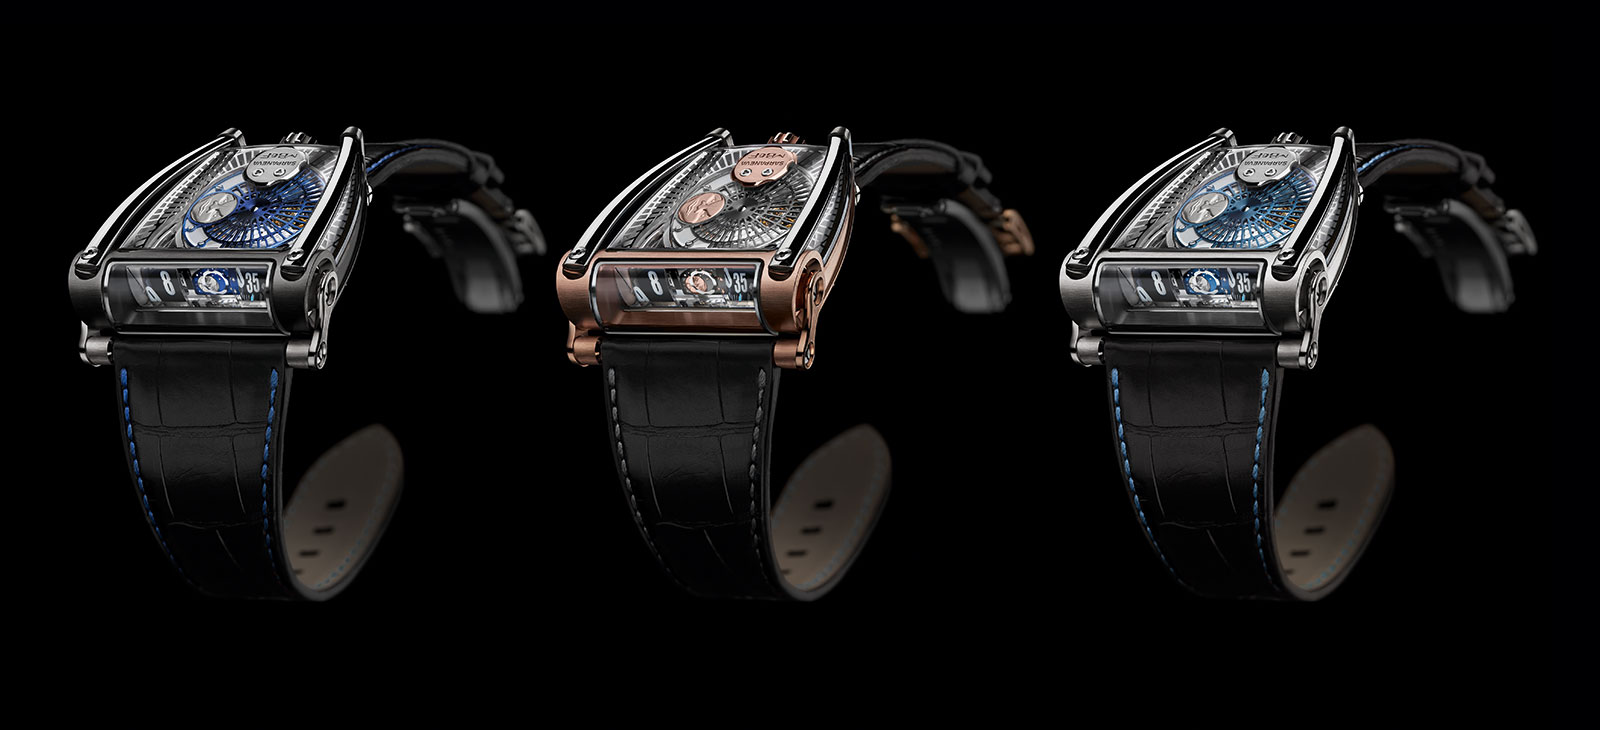 MB&F MoonMachine 2 limited edition